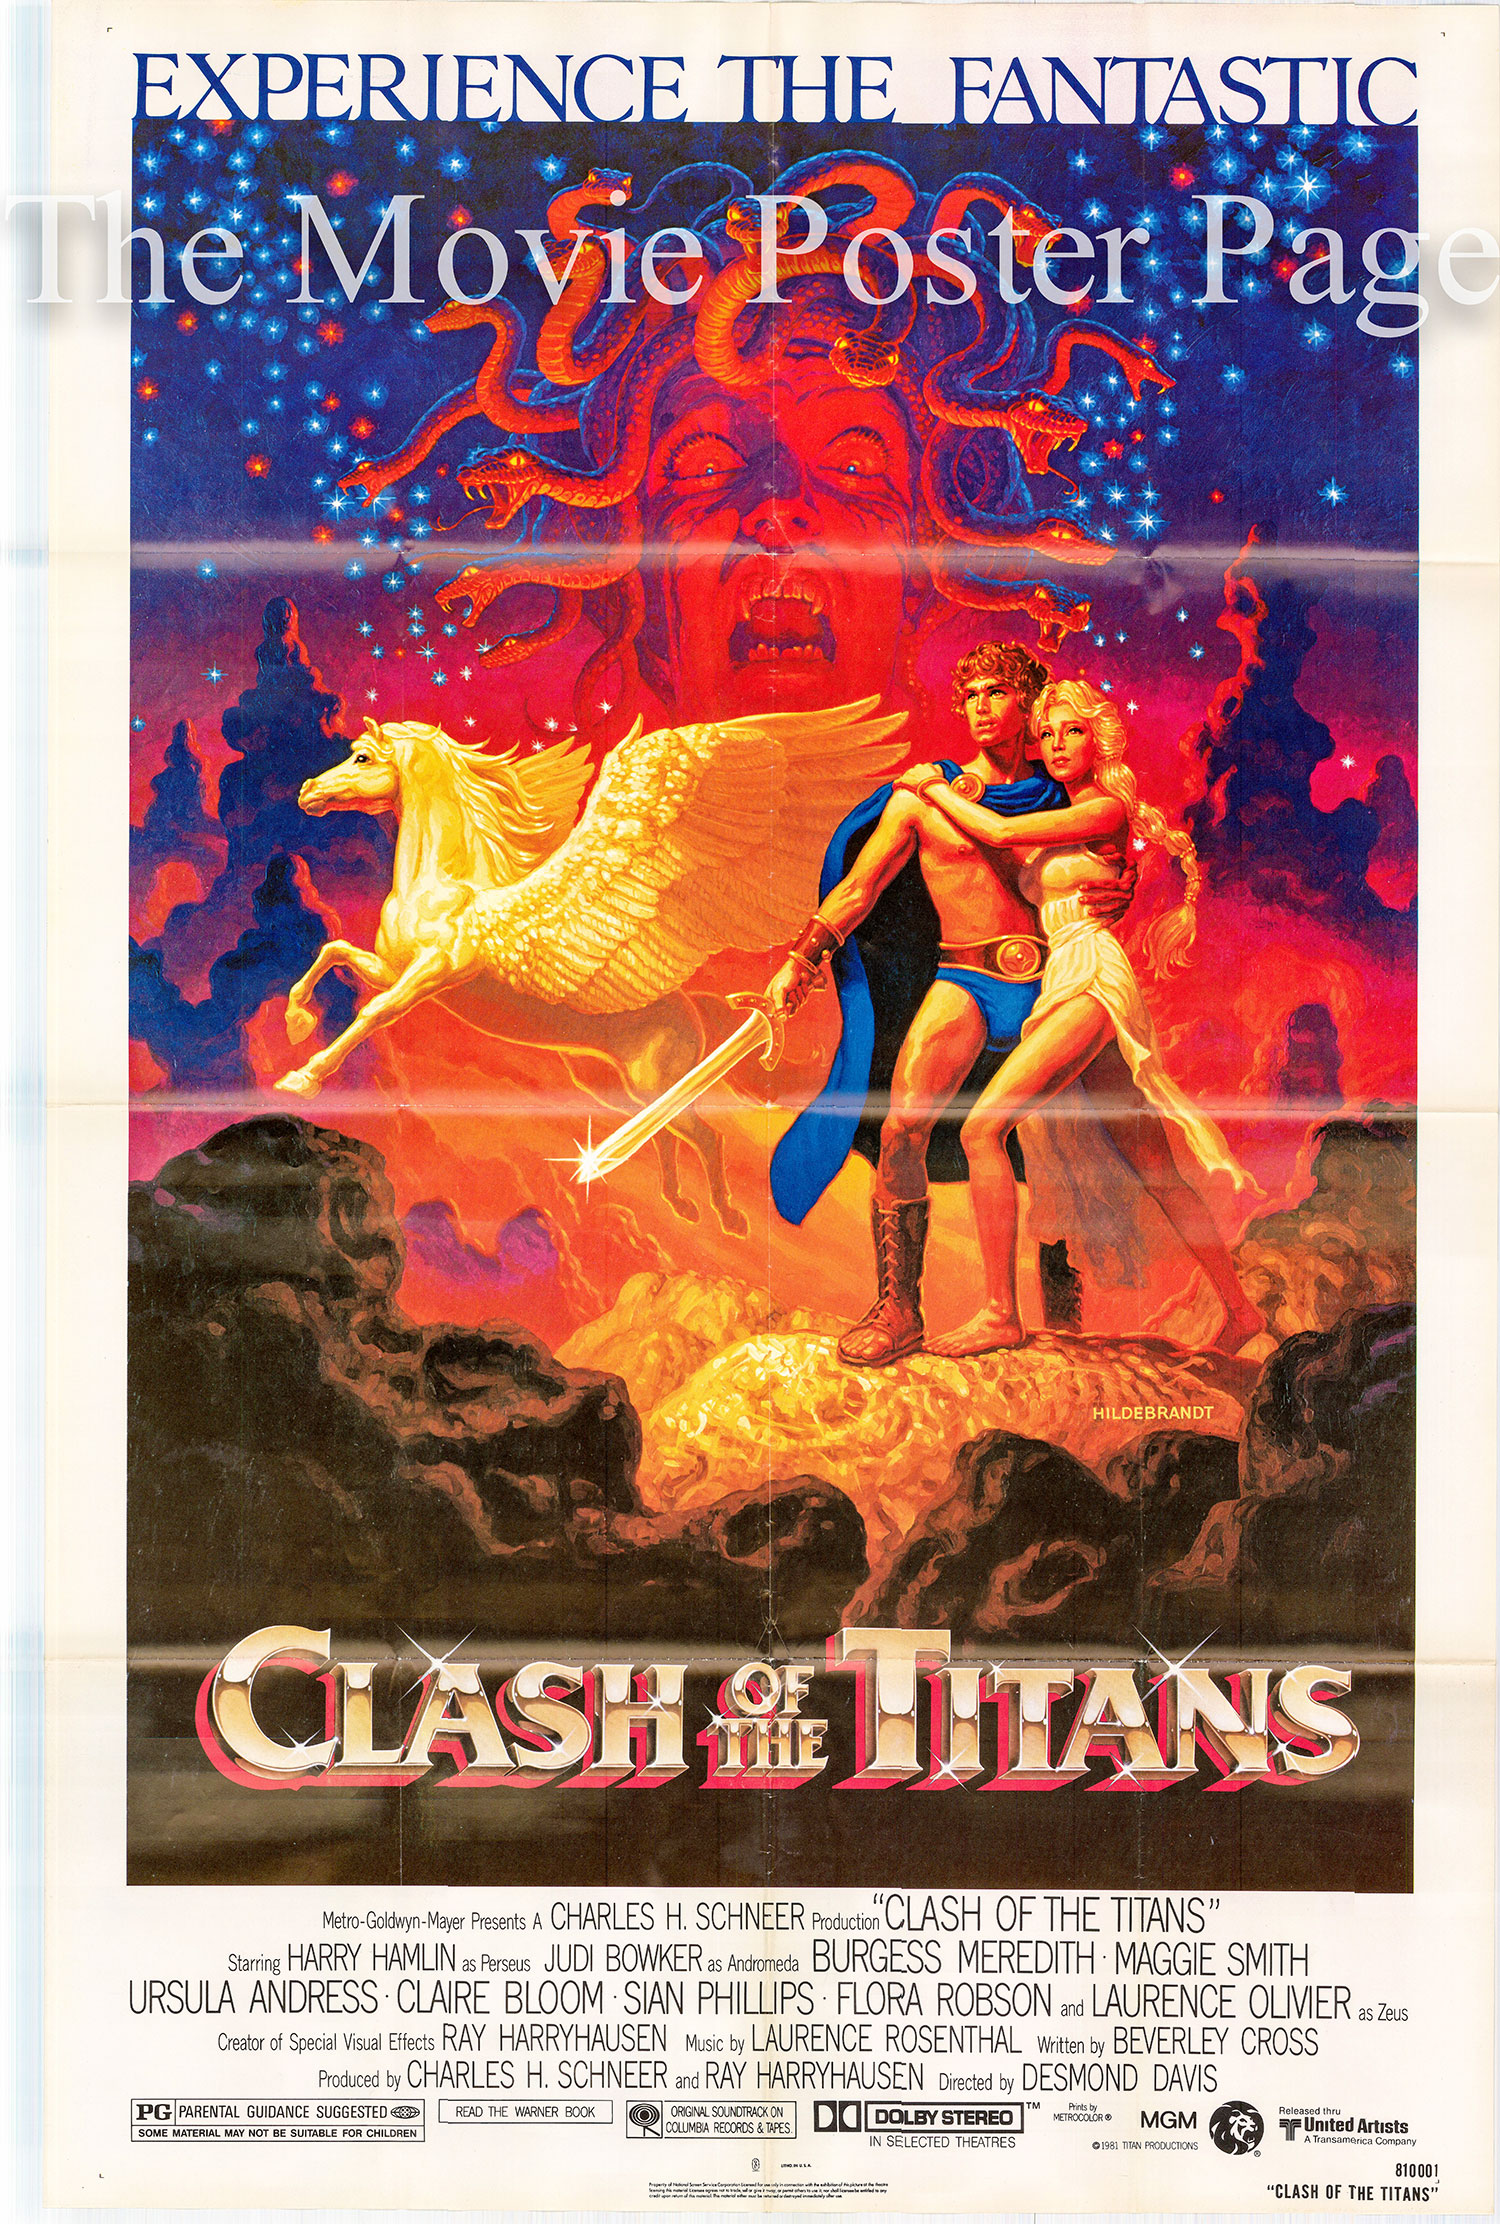 Pictured is a US one-sheet prootional poster for the 1981 Desmond Davis film Clash of the Titans starring Laurence Olivier.